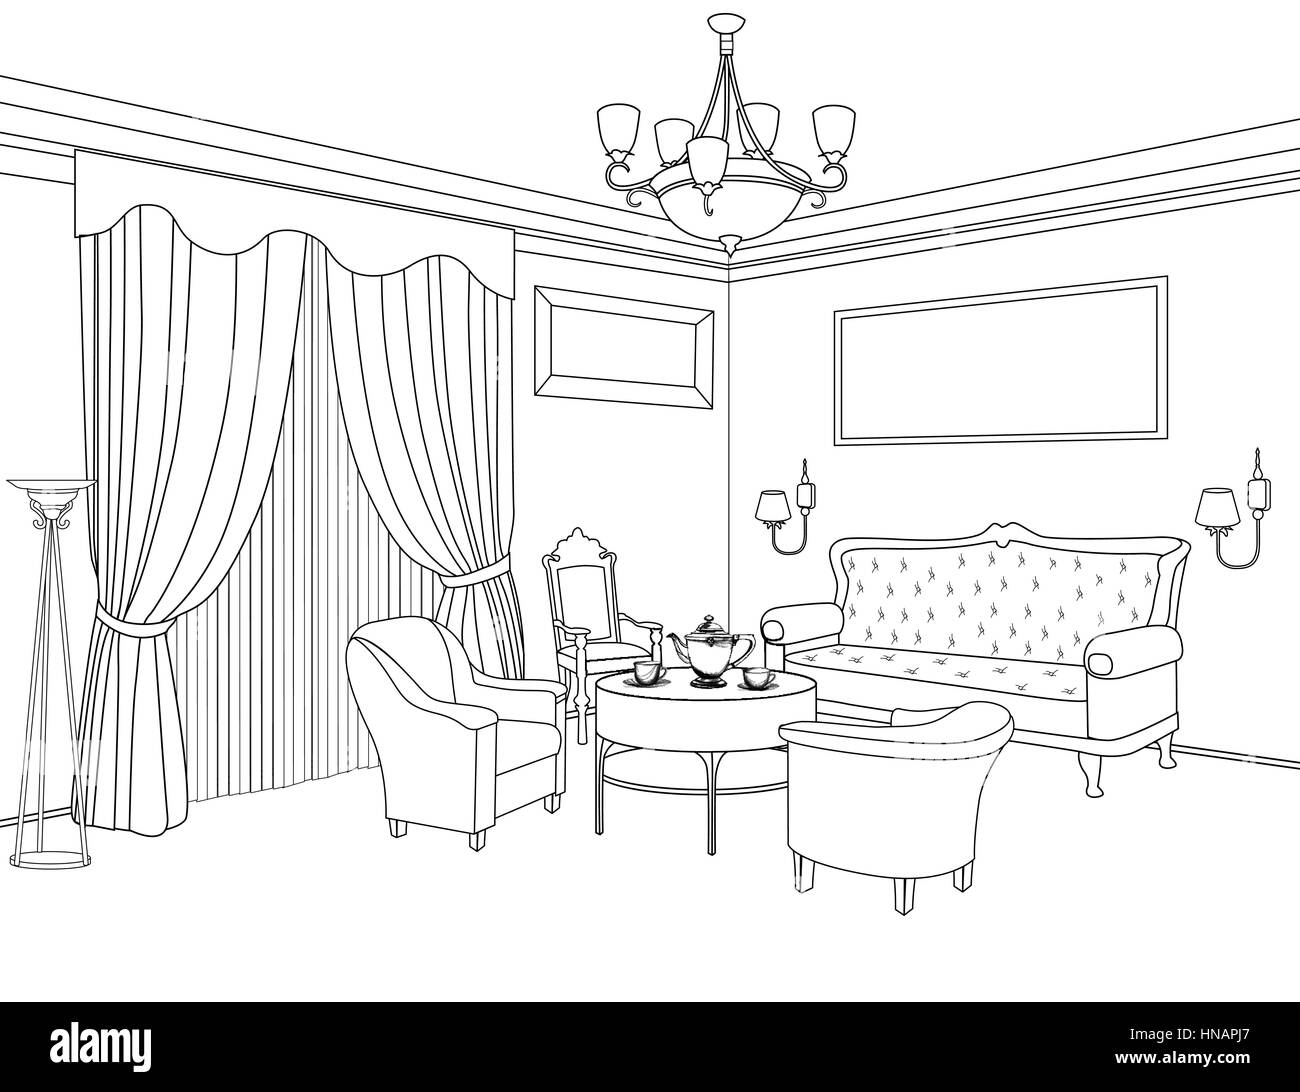 Furniture Ideas For Living Room Stock Vector: Interior Outline Sketch. Furniture Blueprint